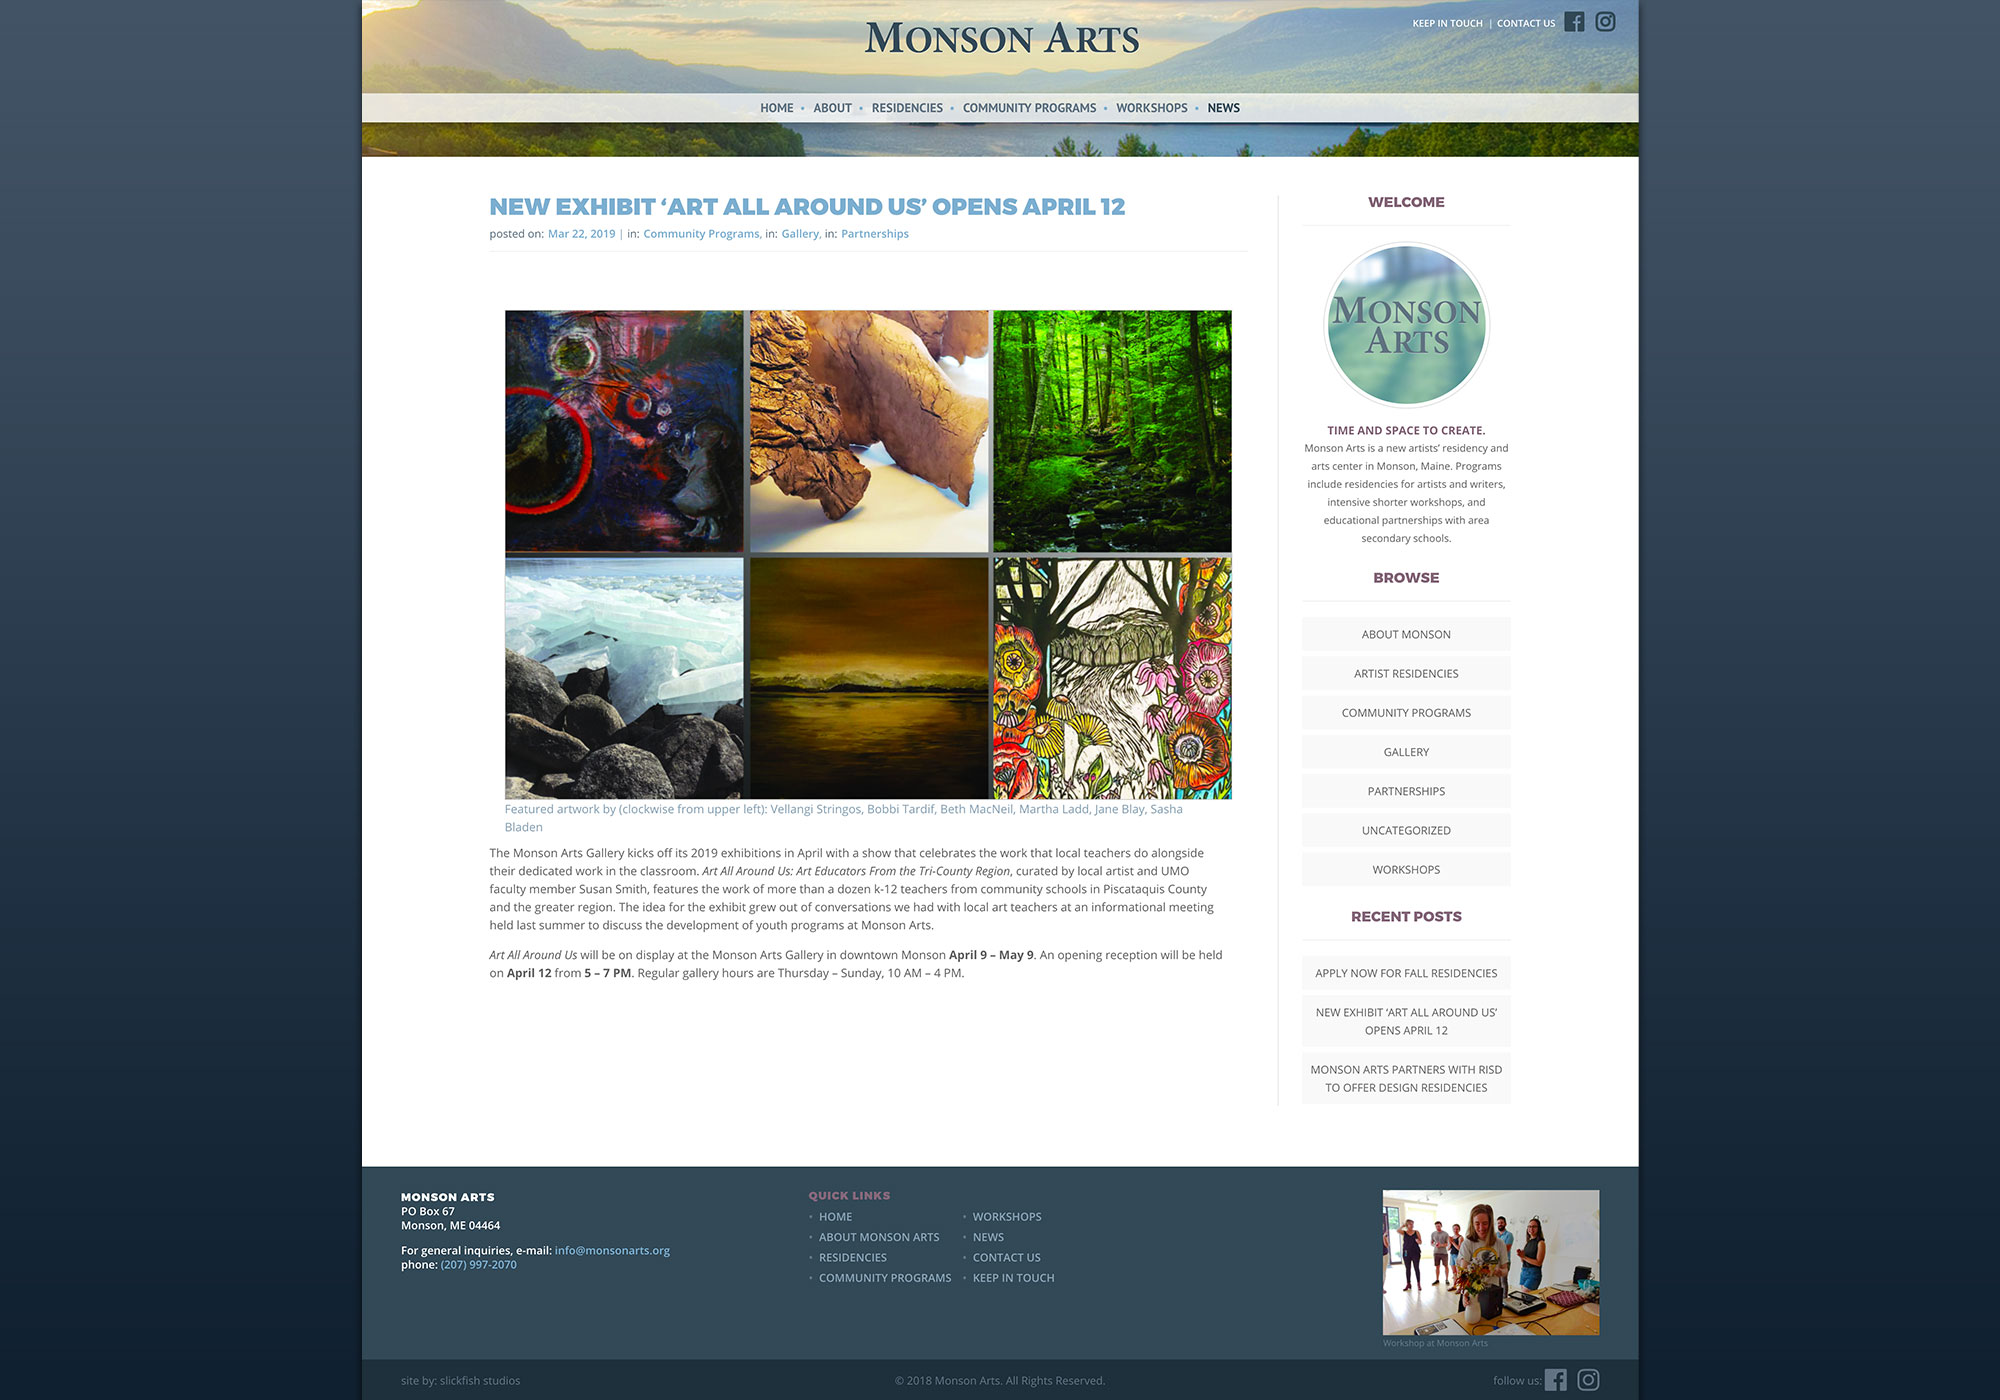 A creative Maine Website Design for a non-profit arts center in Monson.